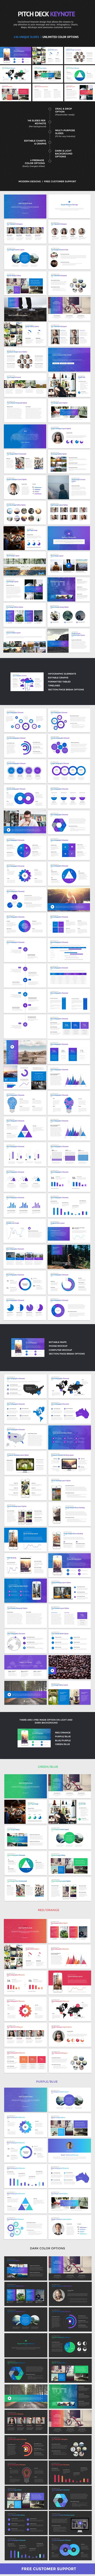 Pitch Deck PowerPoint and/or Keynote presentation design theme from GraphicRiver.